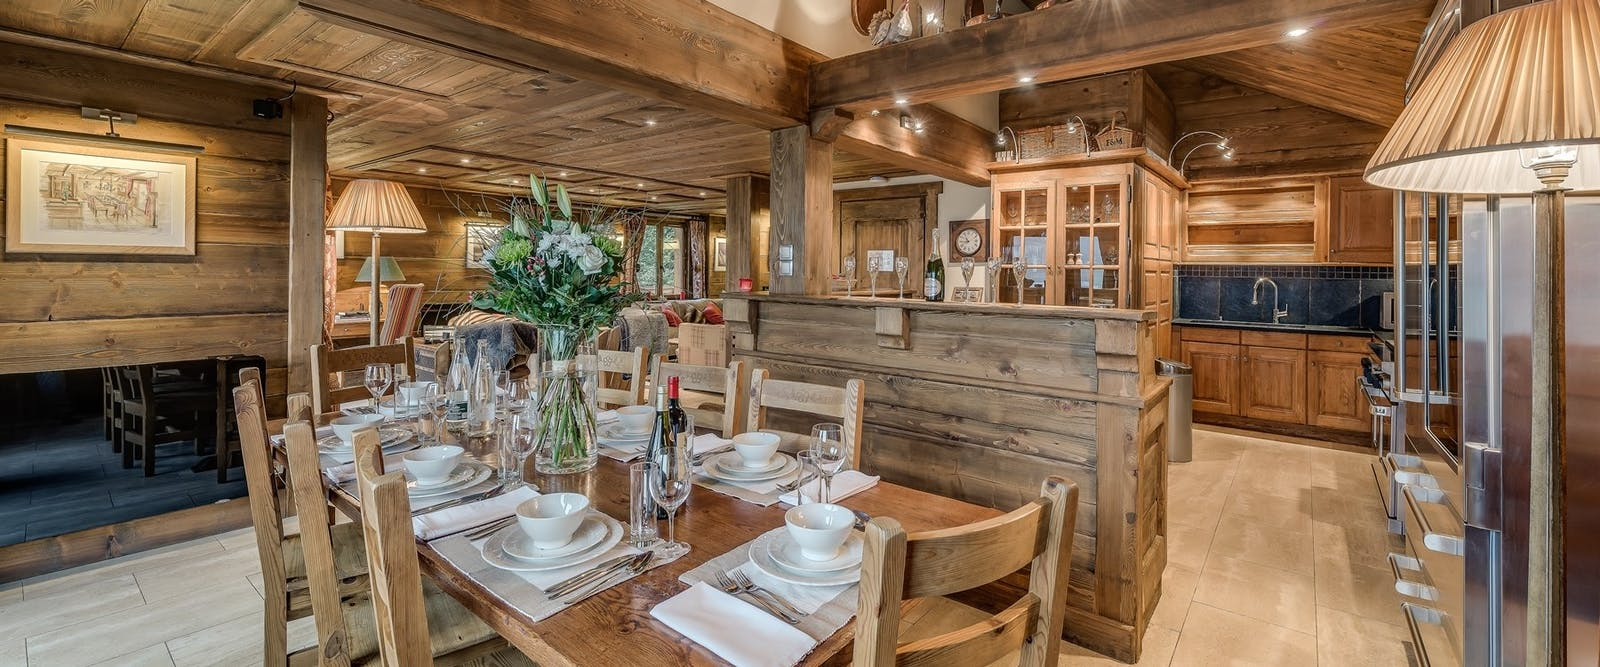 Dining at Chalet Chopine